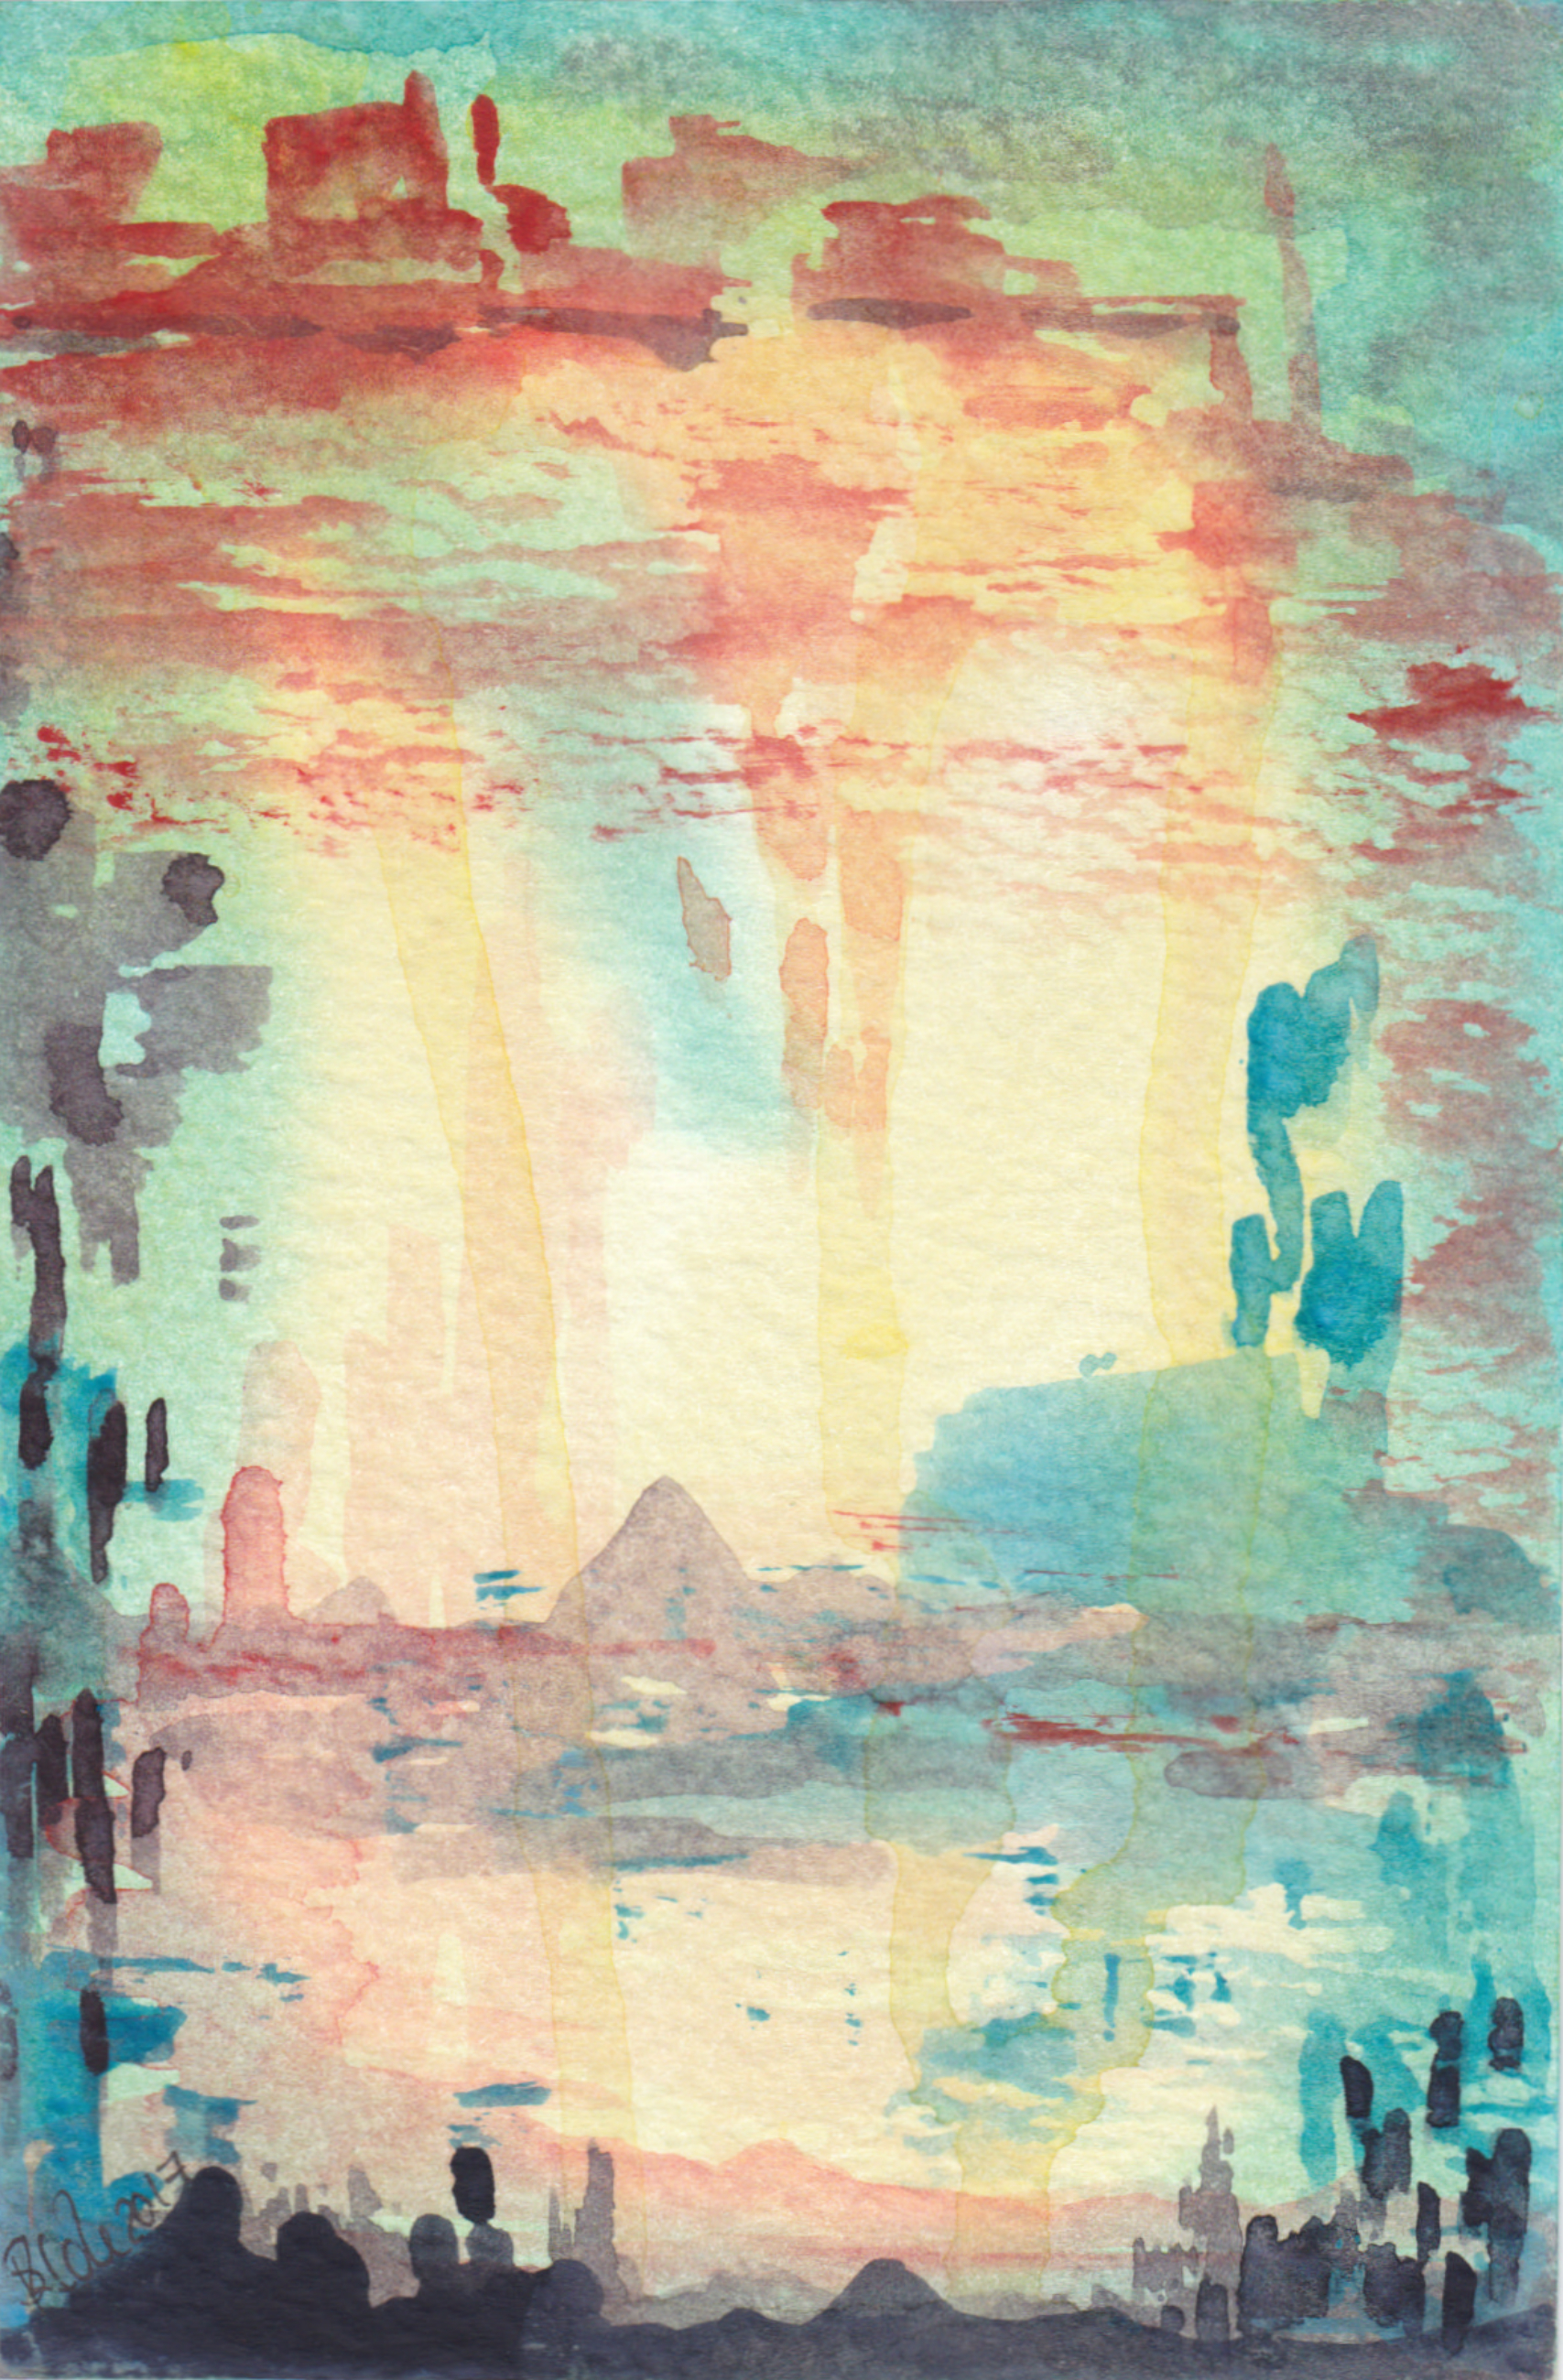 'Hidden Cities' Semi Abstract Original Watercolour Painting © Stacey-Ann Cole 2017